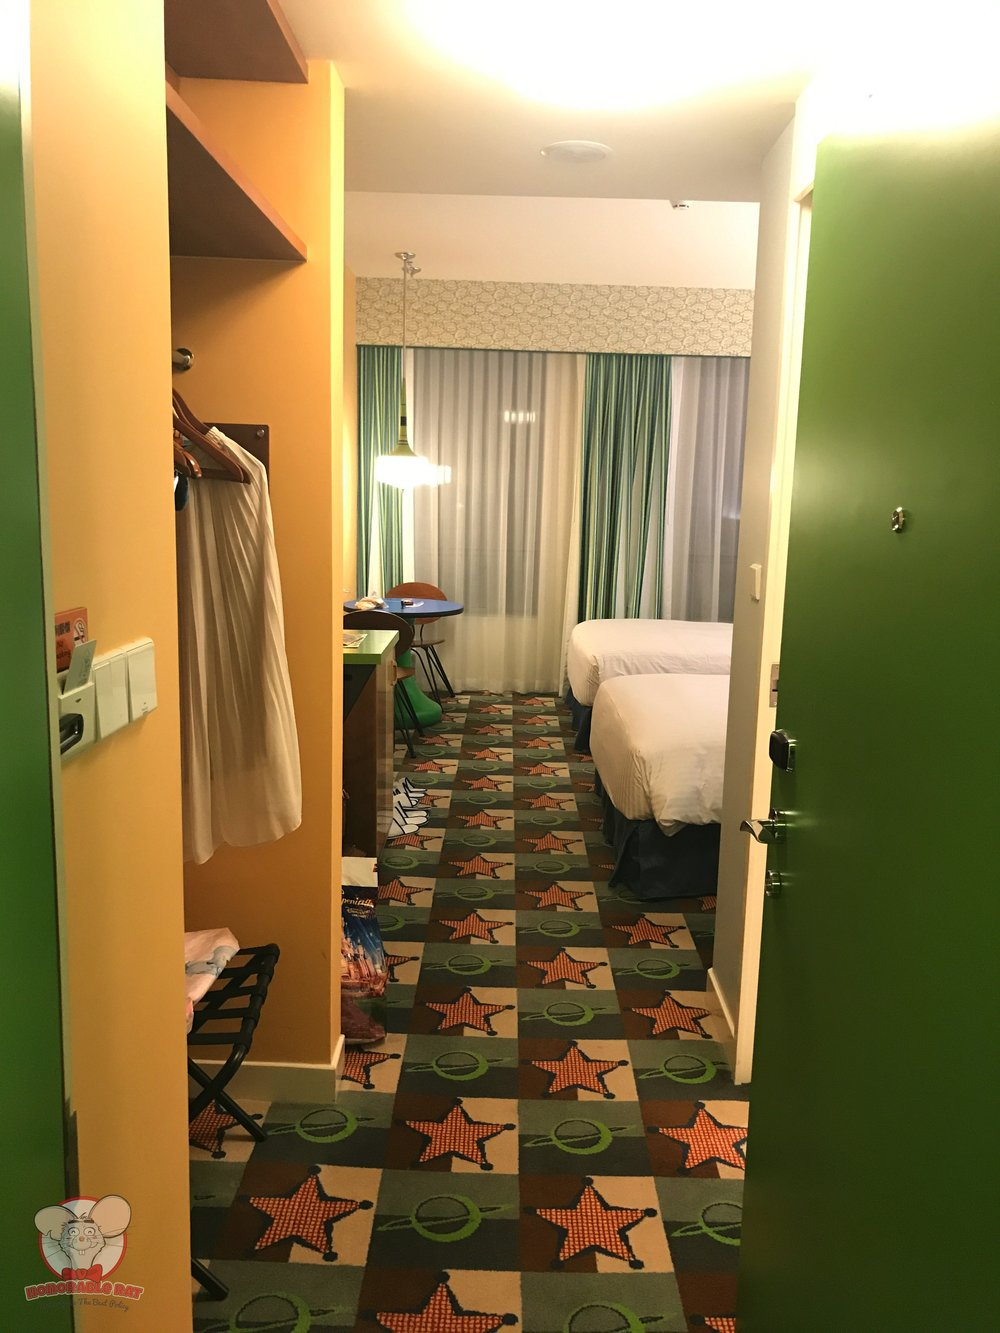 Toy Story Hotel room